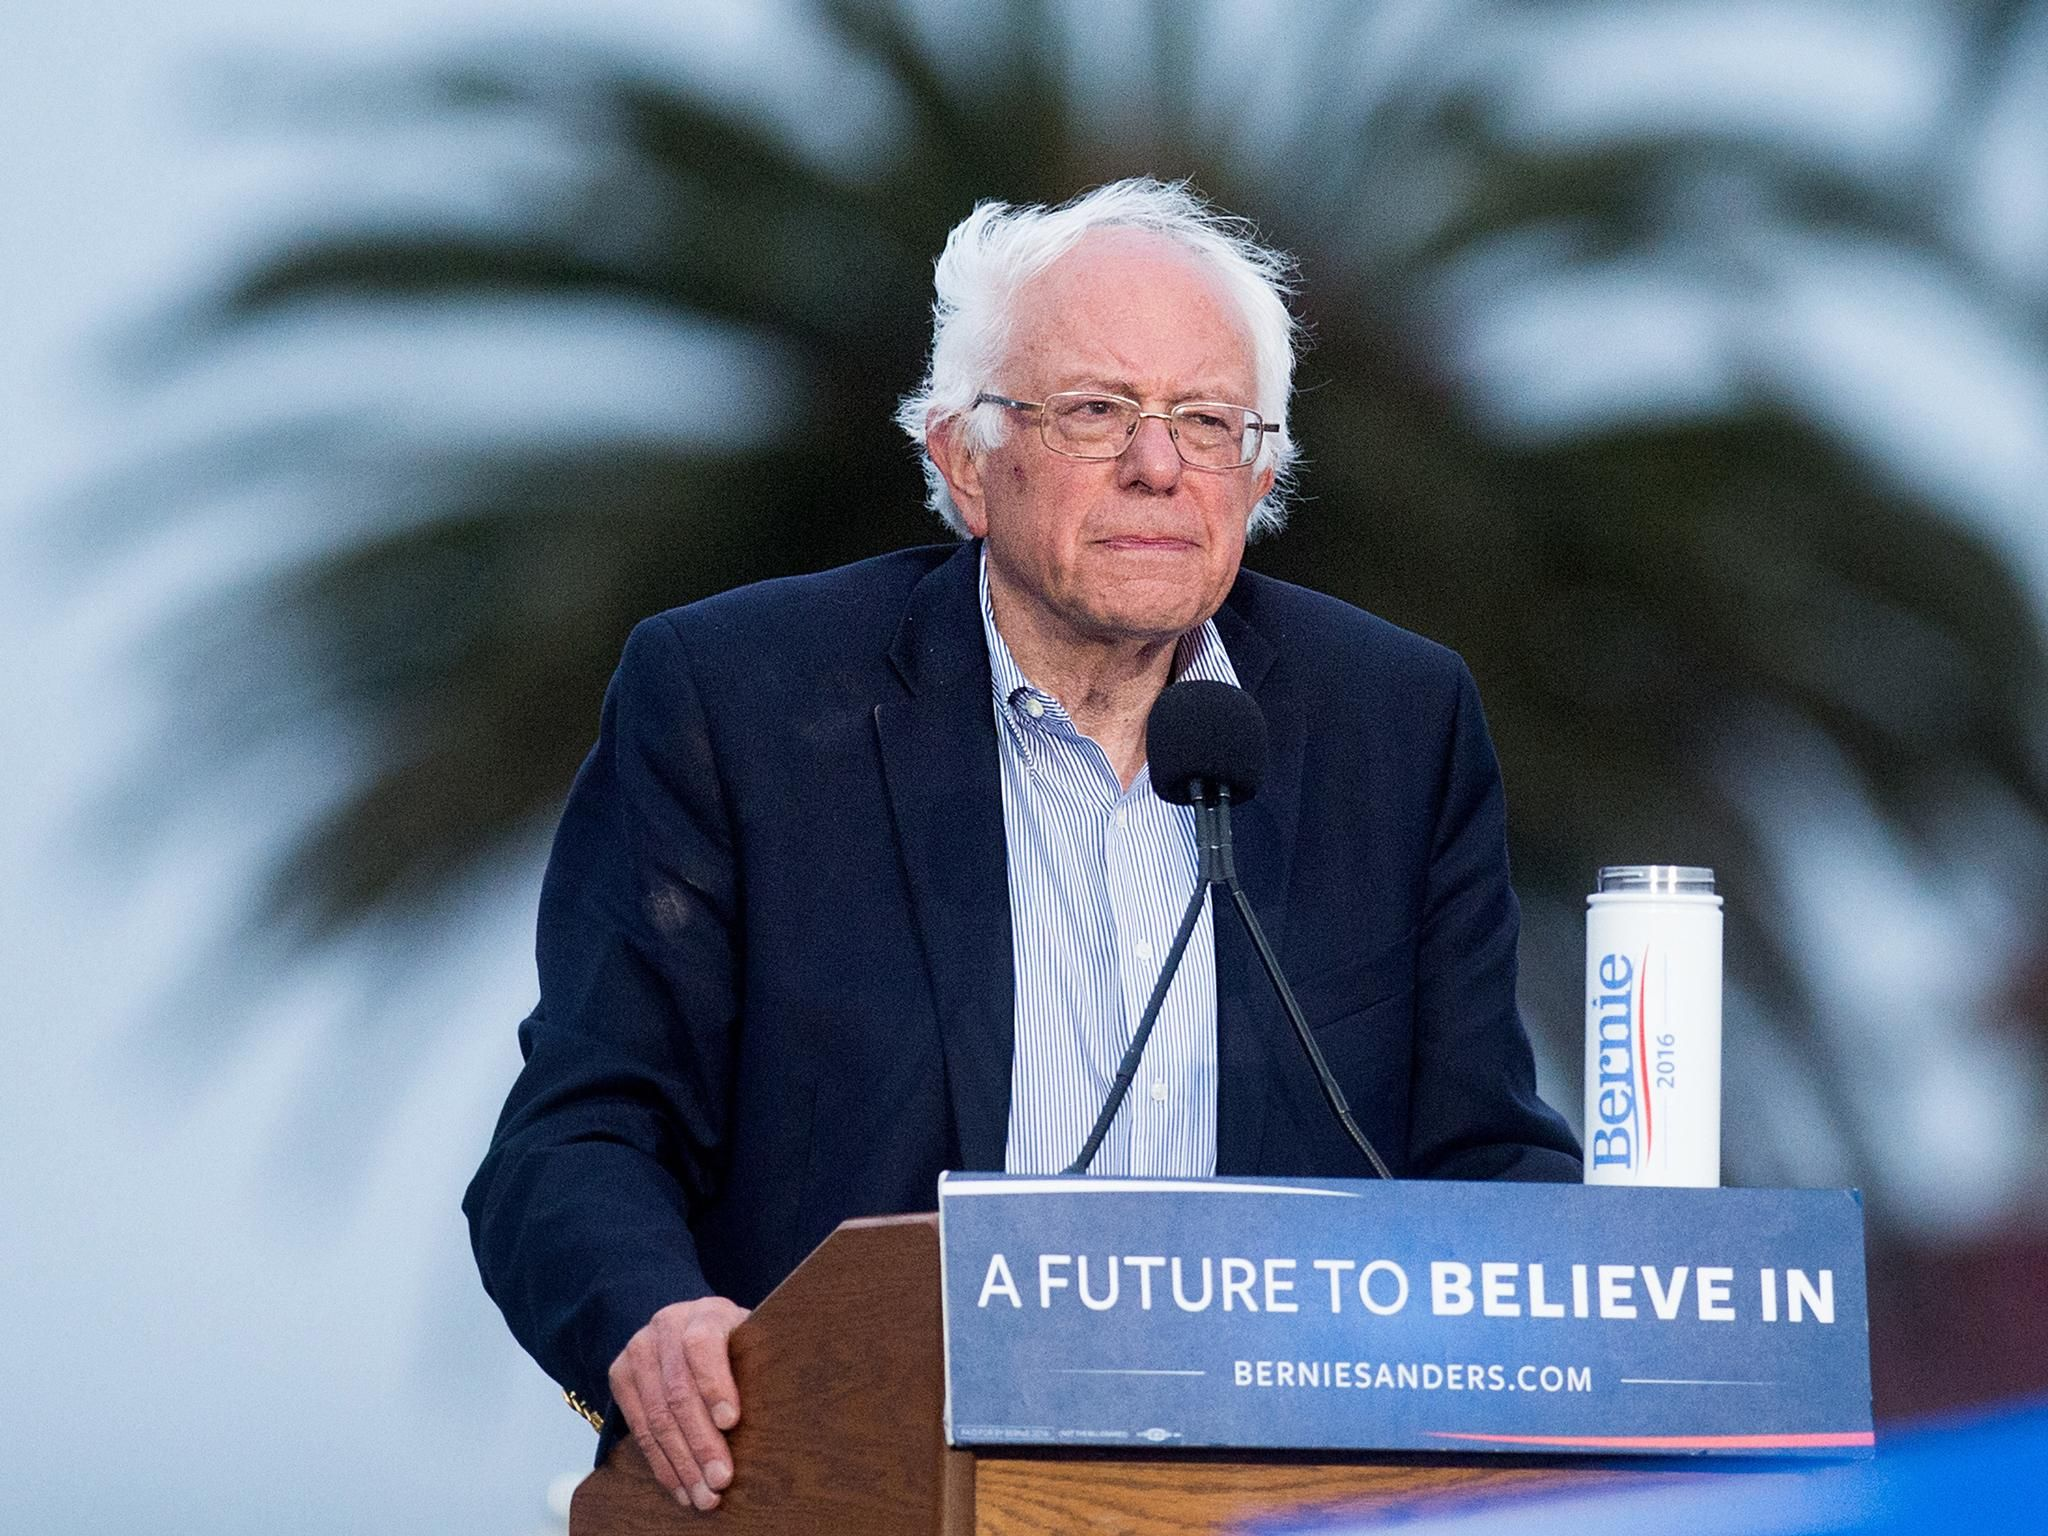 Wikileaks emails: Democratic officials 'plotted to expose Bernie Sanders' as an atheist | People | News | The Independent #StillSanders #OnlyBernie